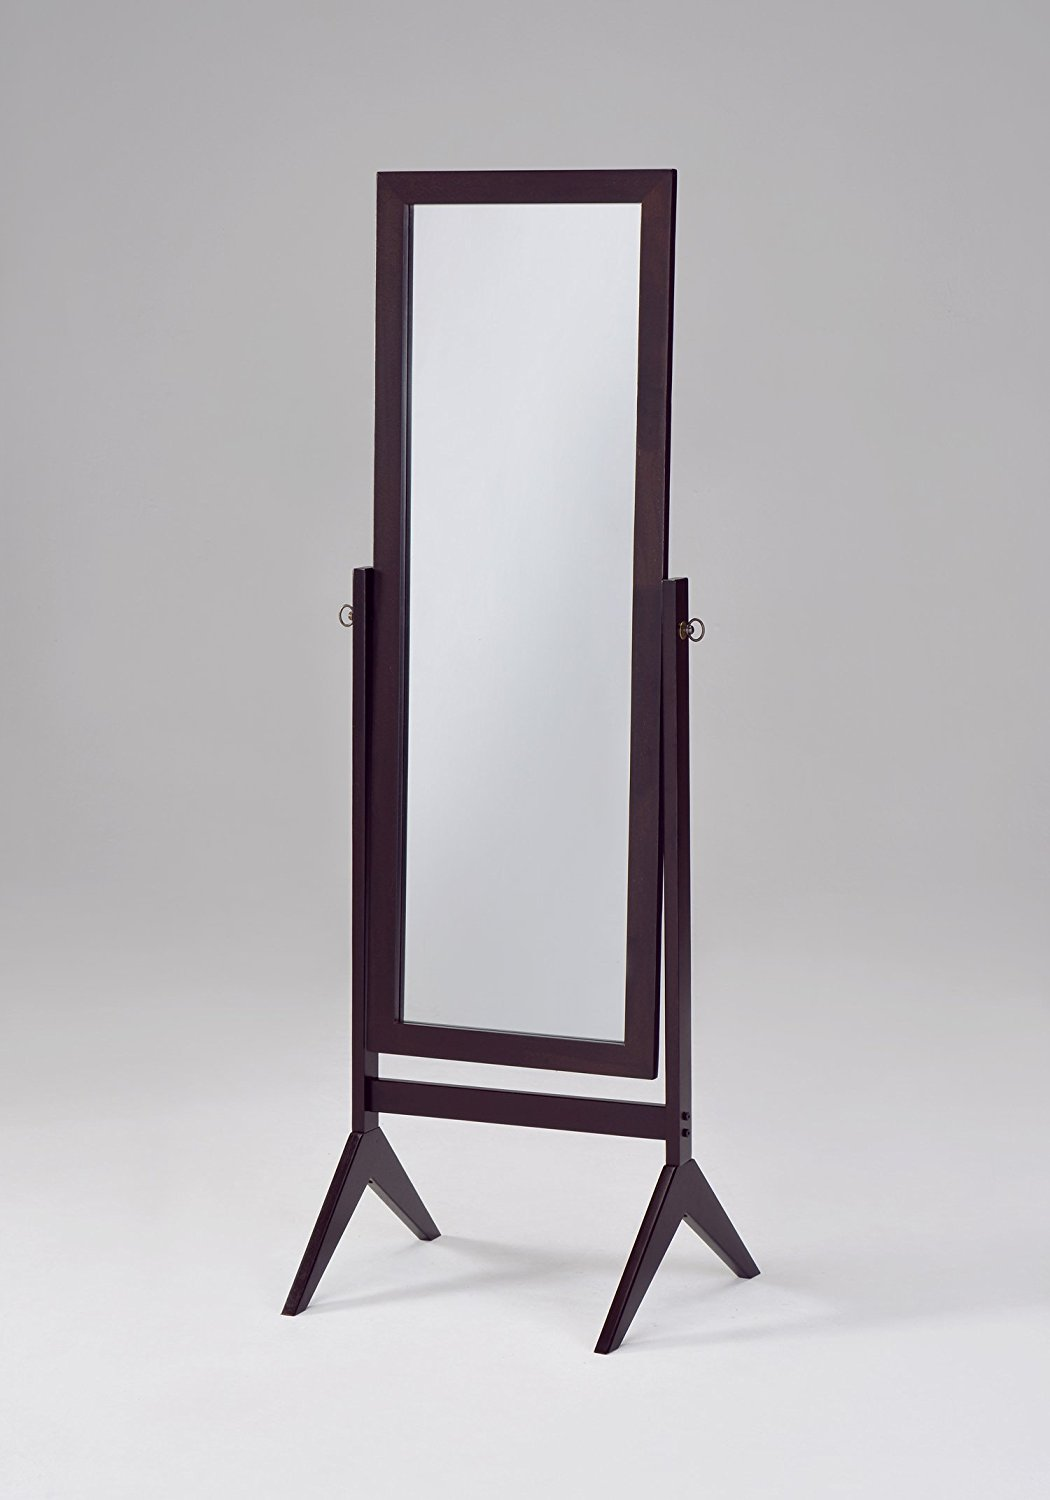 Floor Length Mirror, Espresso Bedroom Tall Standing Frame Wooden Cheval Mirror by eHomeProducts